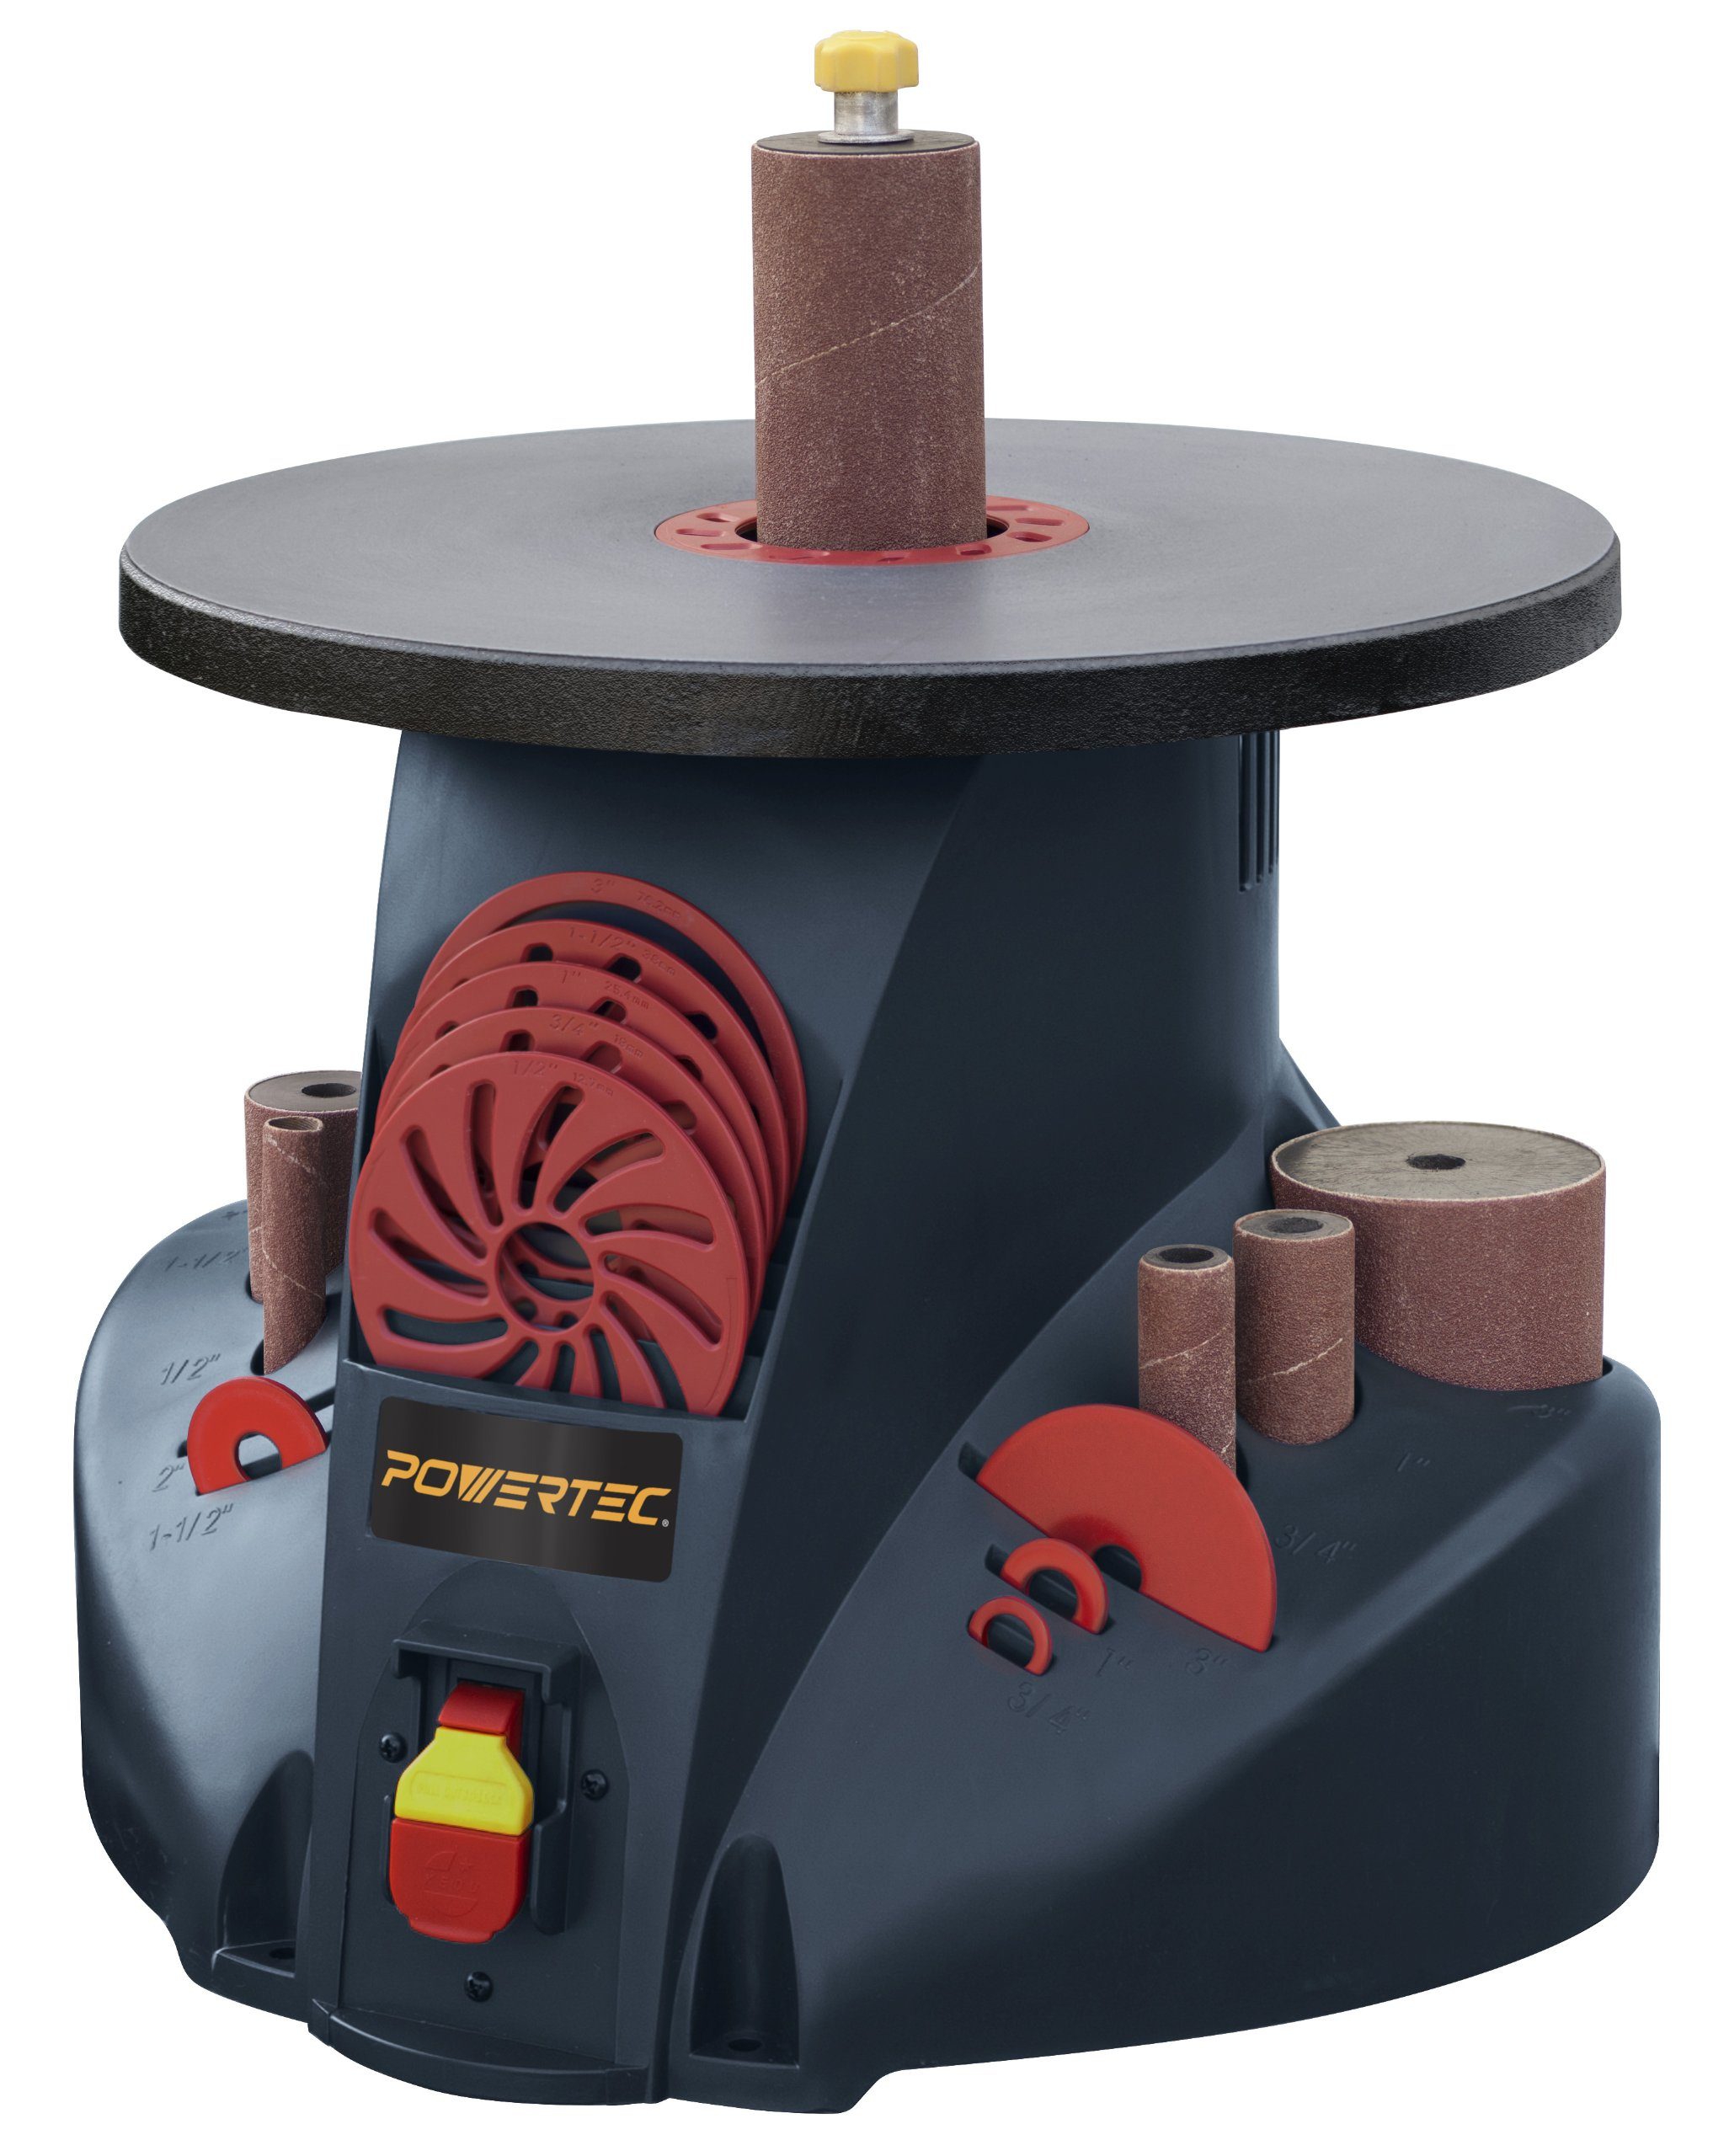 POWERTEC OS1400 2.6 Amp Benchtop Oscillating Spindle Sander by POWERTEC